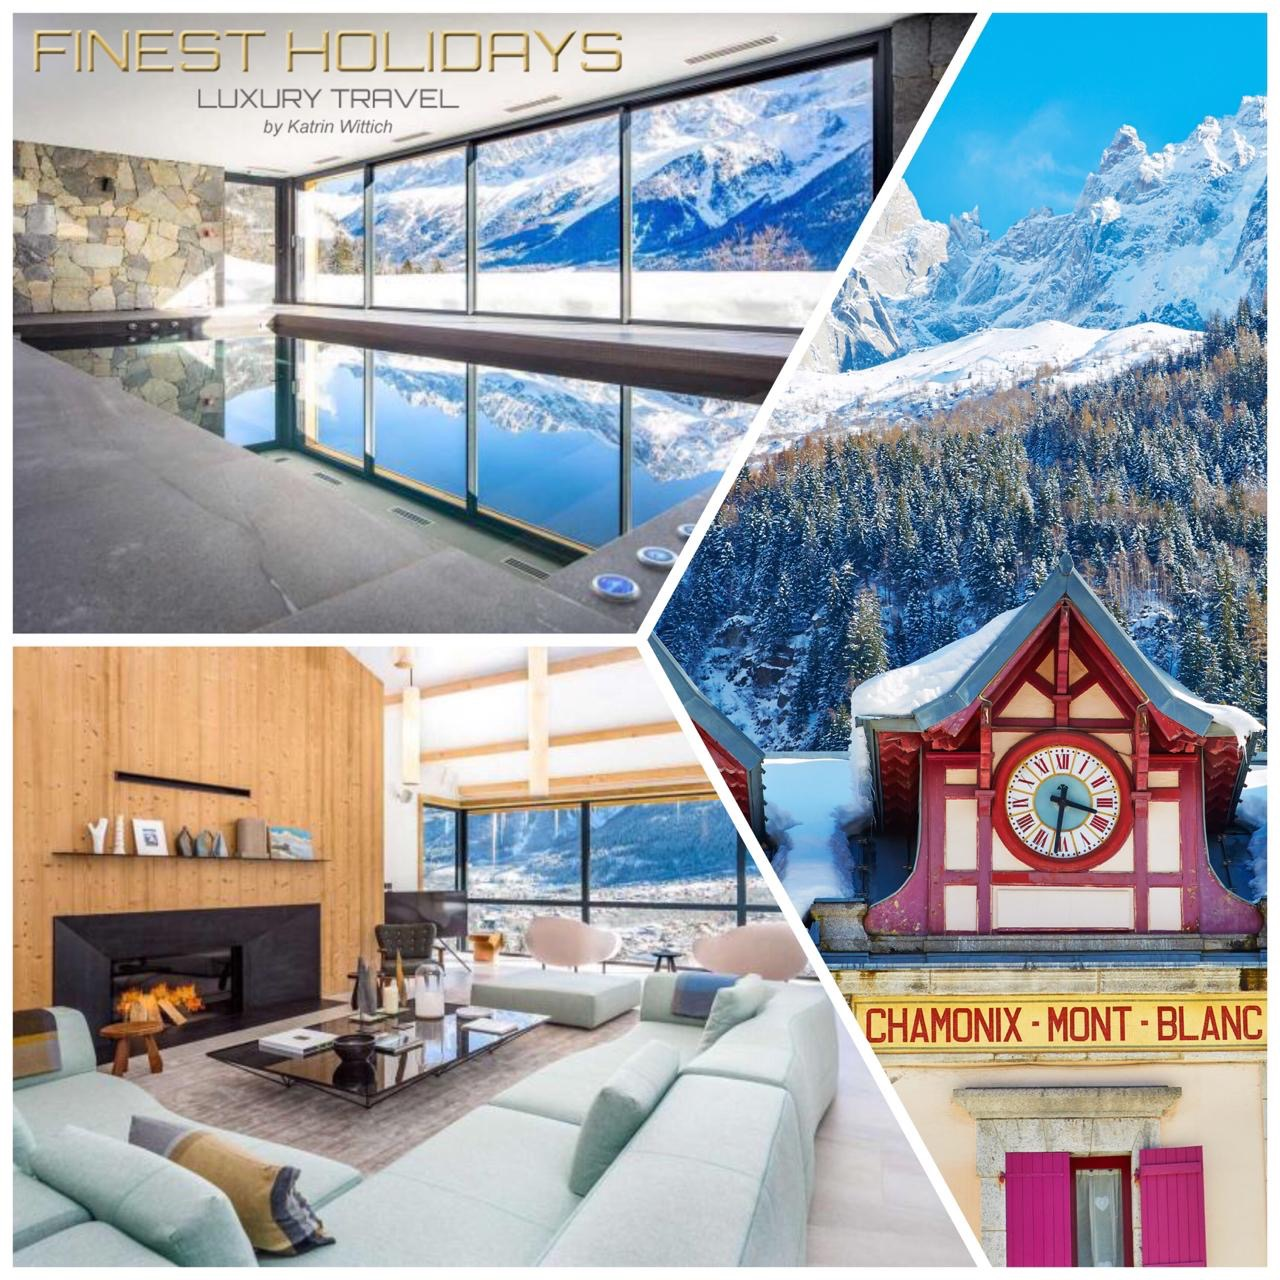 Le Mont Blanc, the largest chalet in the charming village of Chamonix